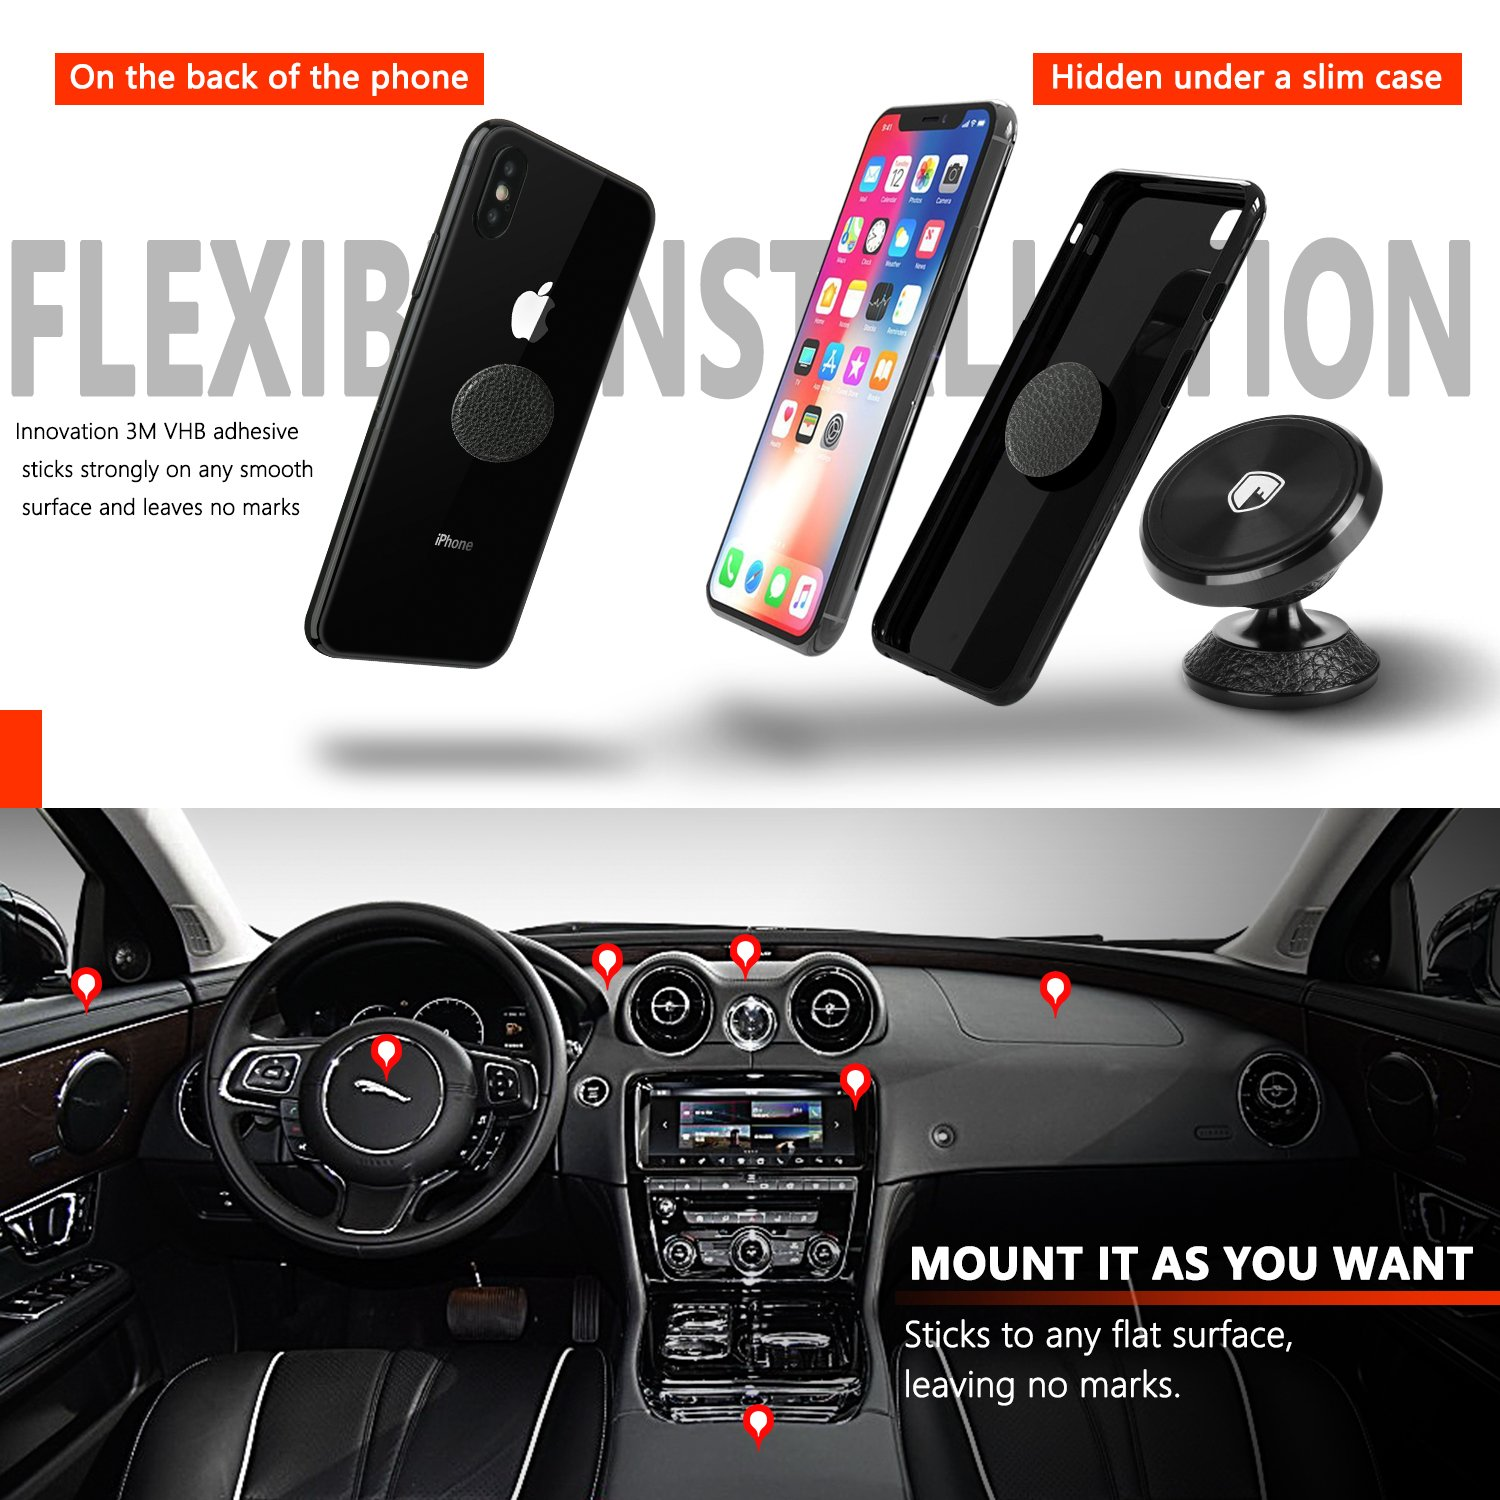 Magnetic Phone Holder Mount for Car - FITFORT Universal 360° Rotation Car Phone Mount Compatible iPhone X 8 7 6 Plus, Galaxy S9 S8 Note 8, GPS, Mini Tablet and More PG01